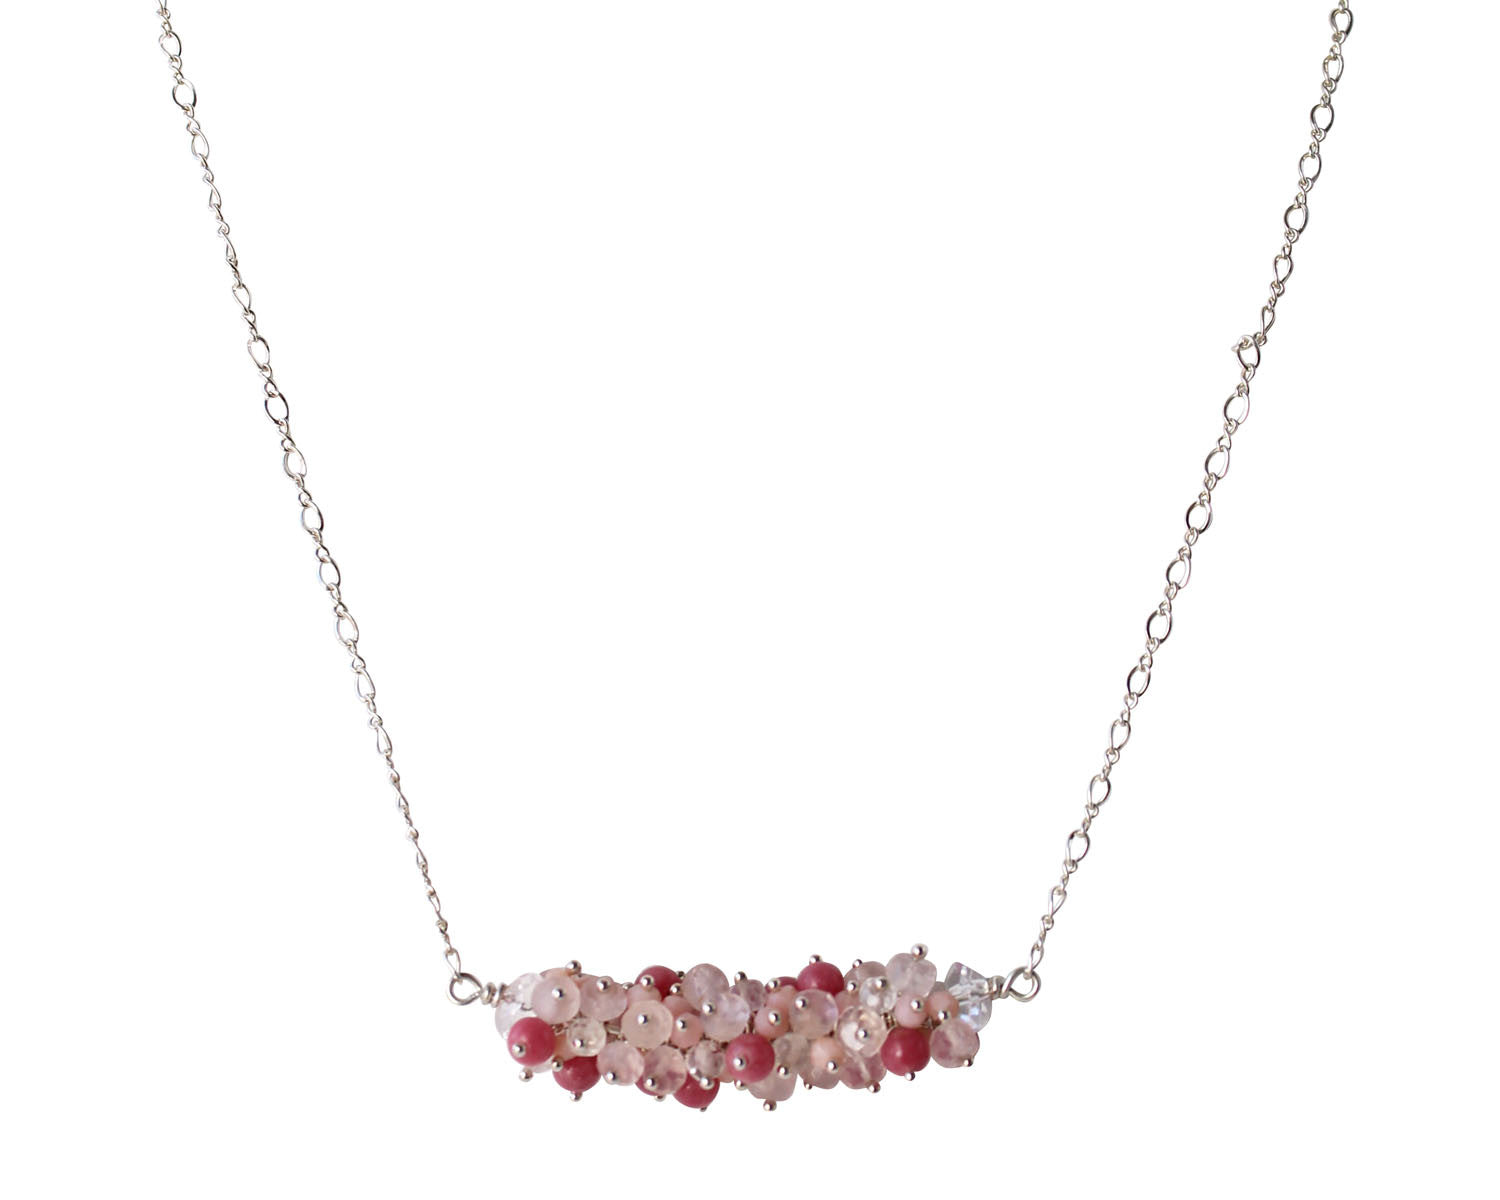 Cluster Ignite Necklace